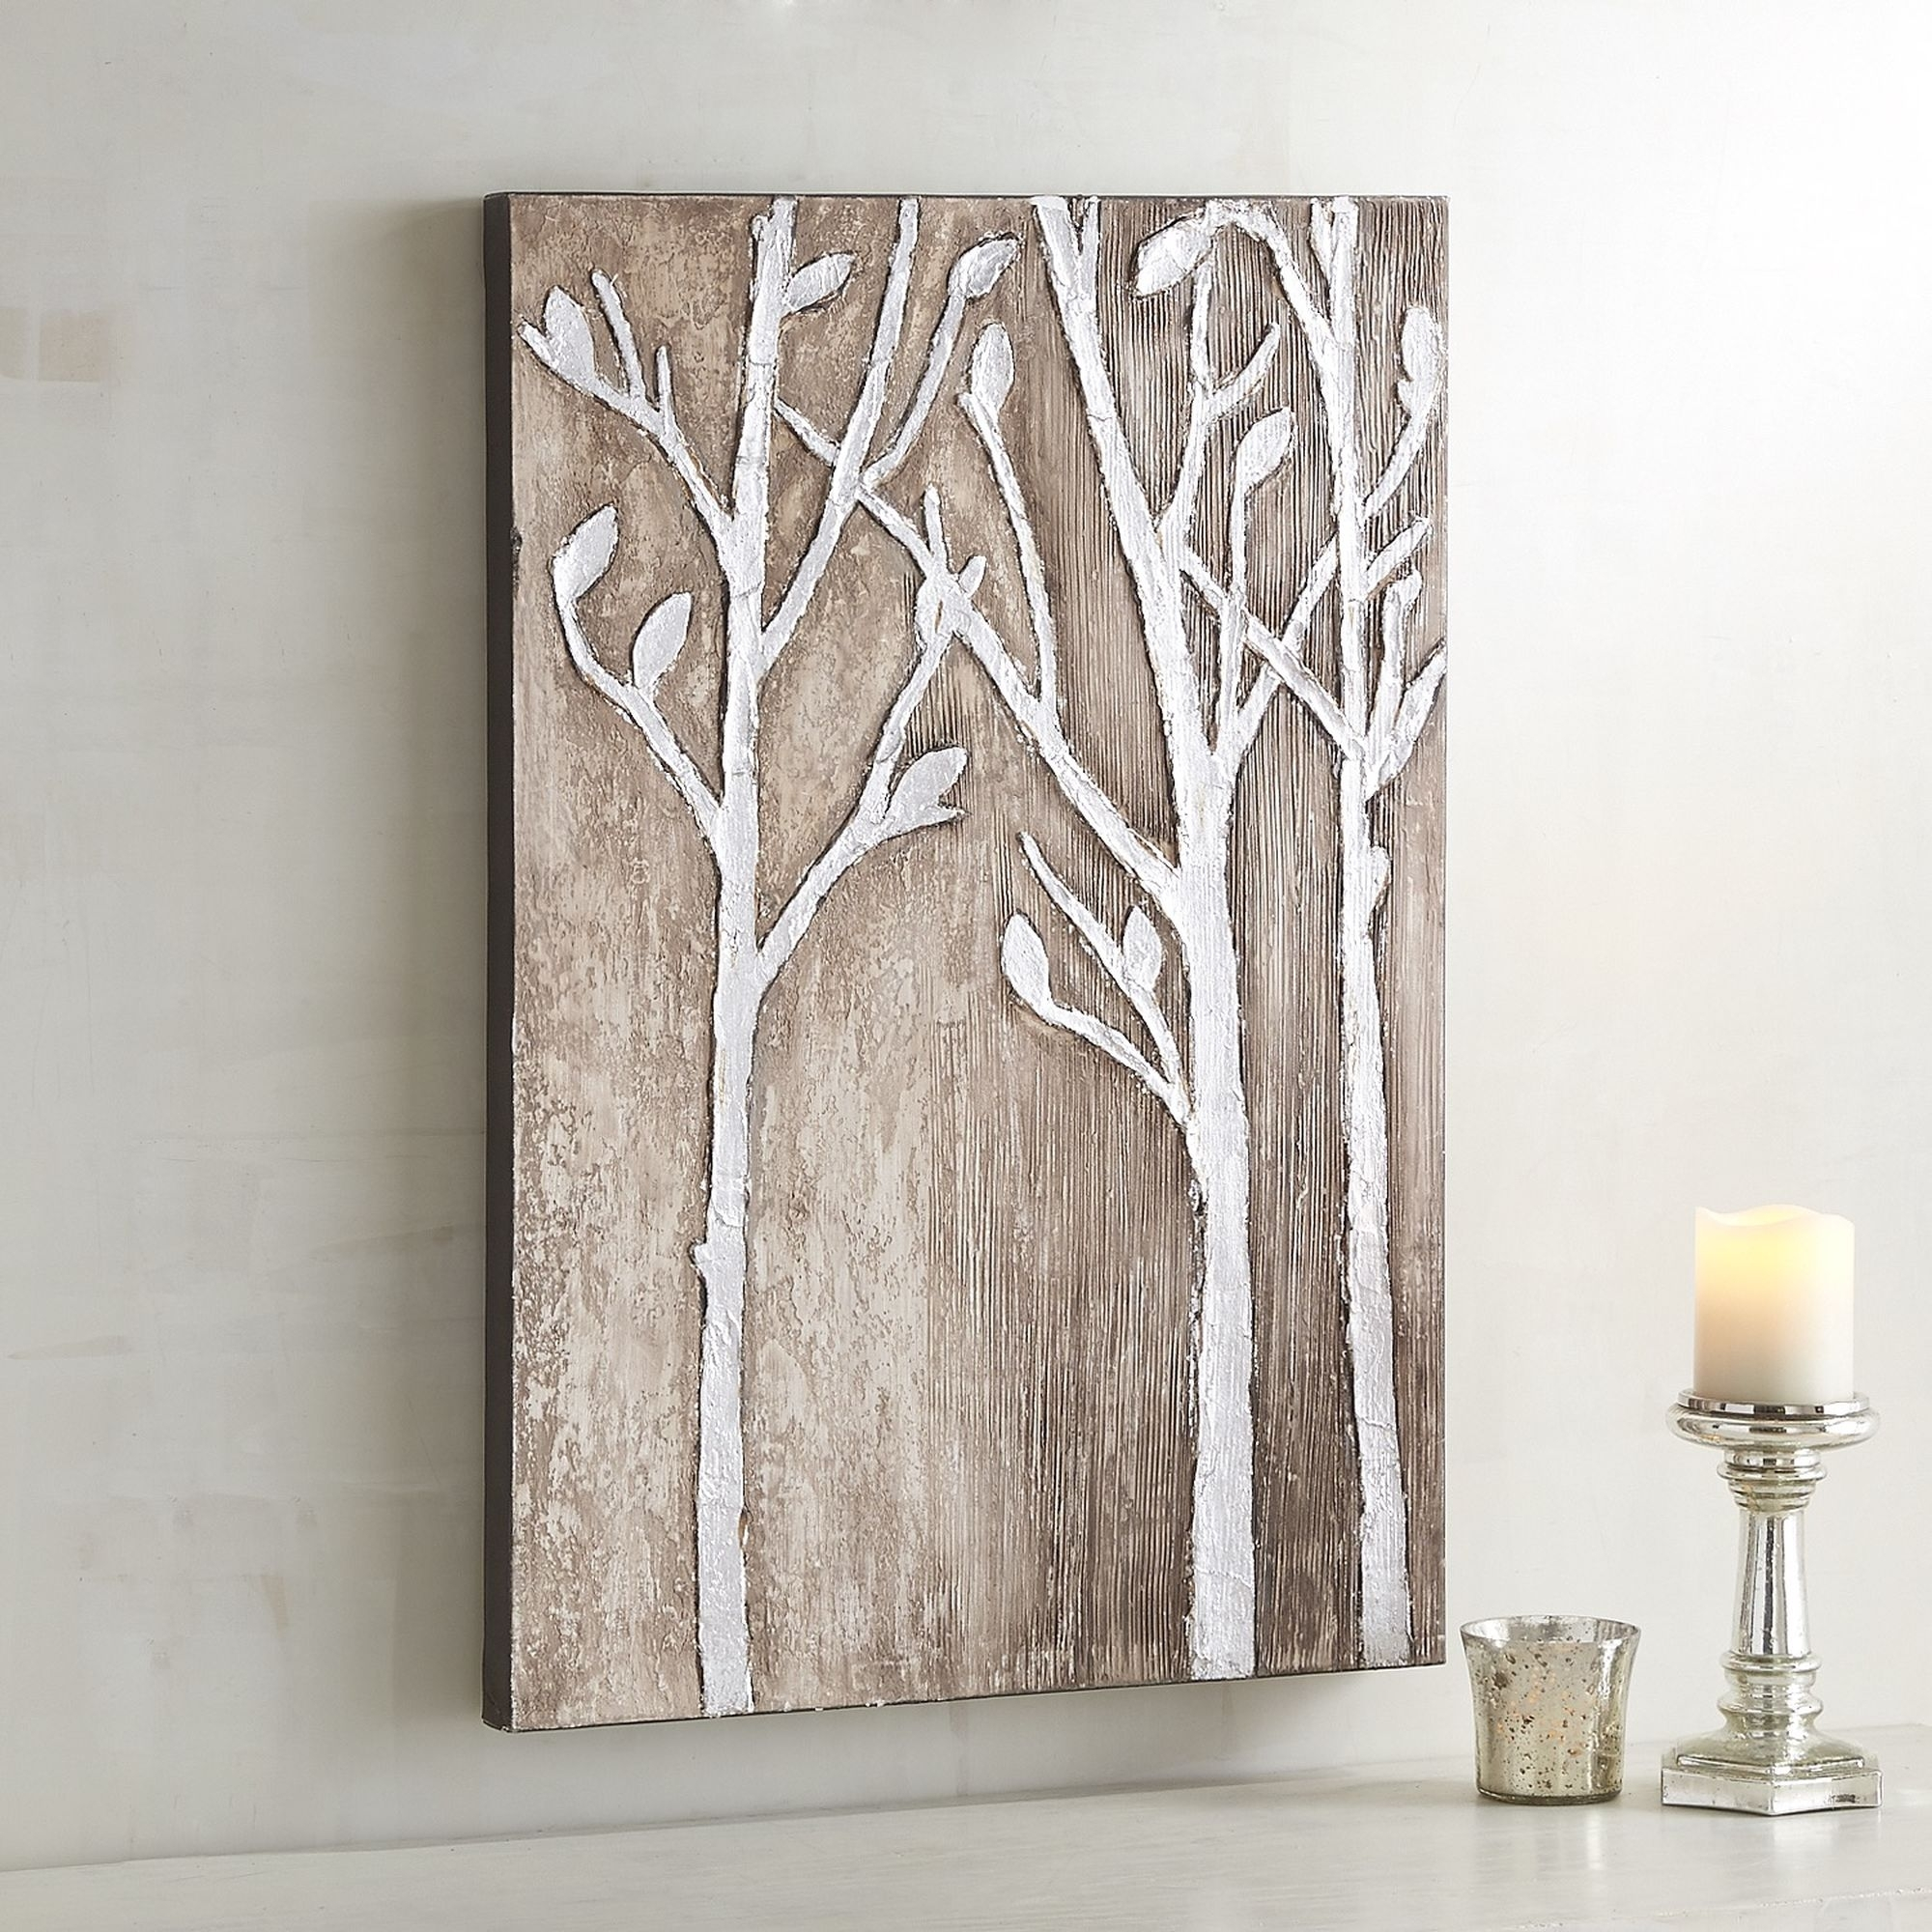 Pier One Silver Birch Wall Art $62 Acrylic On Canvas Wall Art (View 12 of 15)